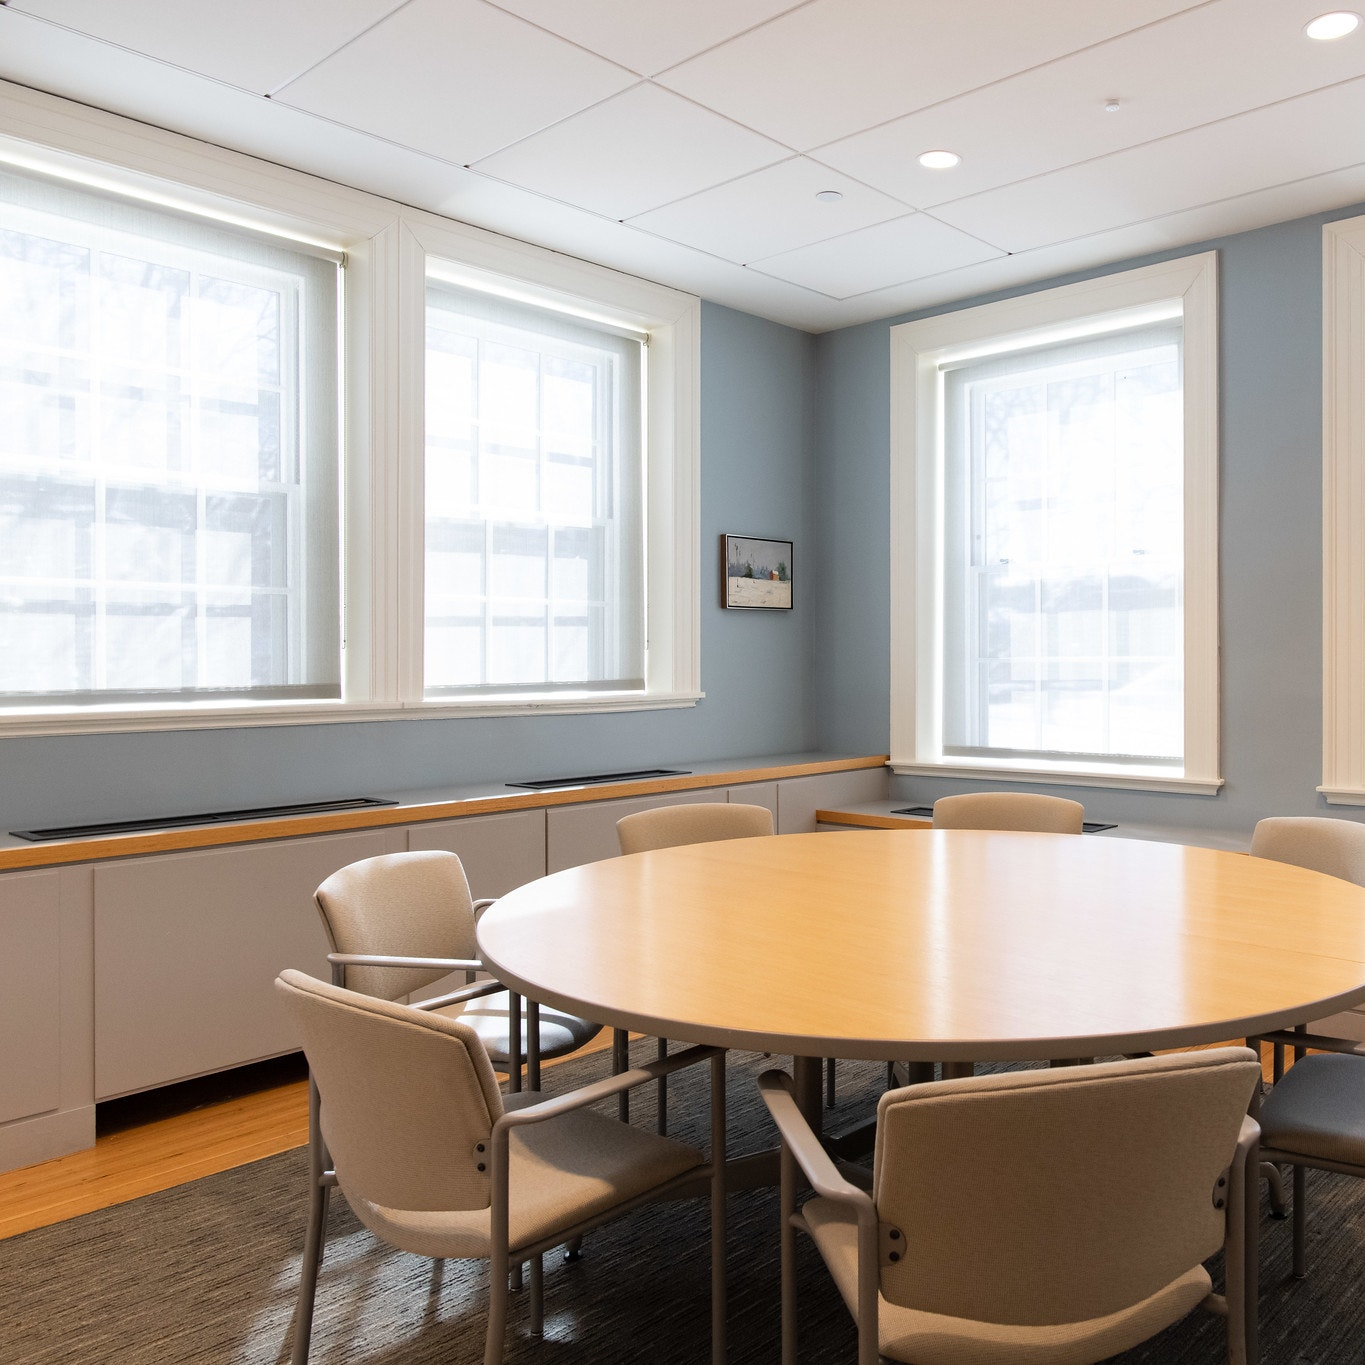 View from entrance of circular conference room table, seating for 7 people. Natural light from windows entering the room.